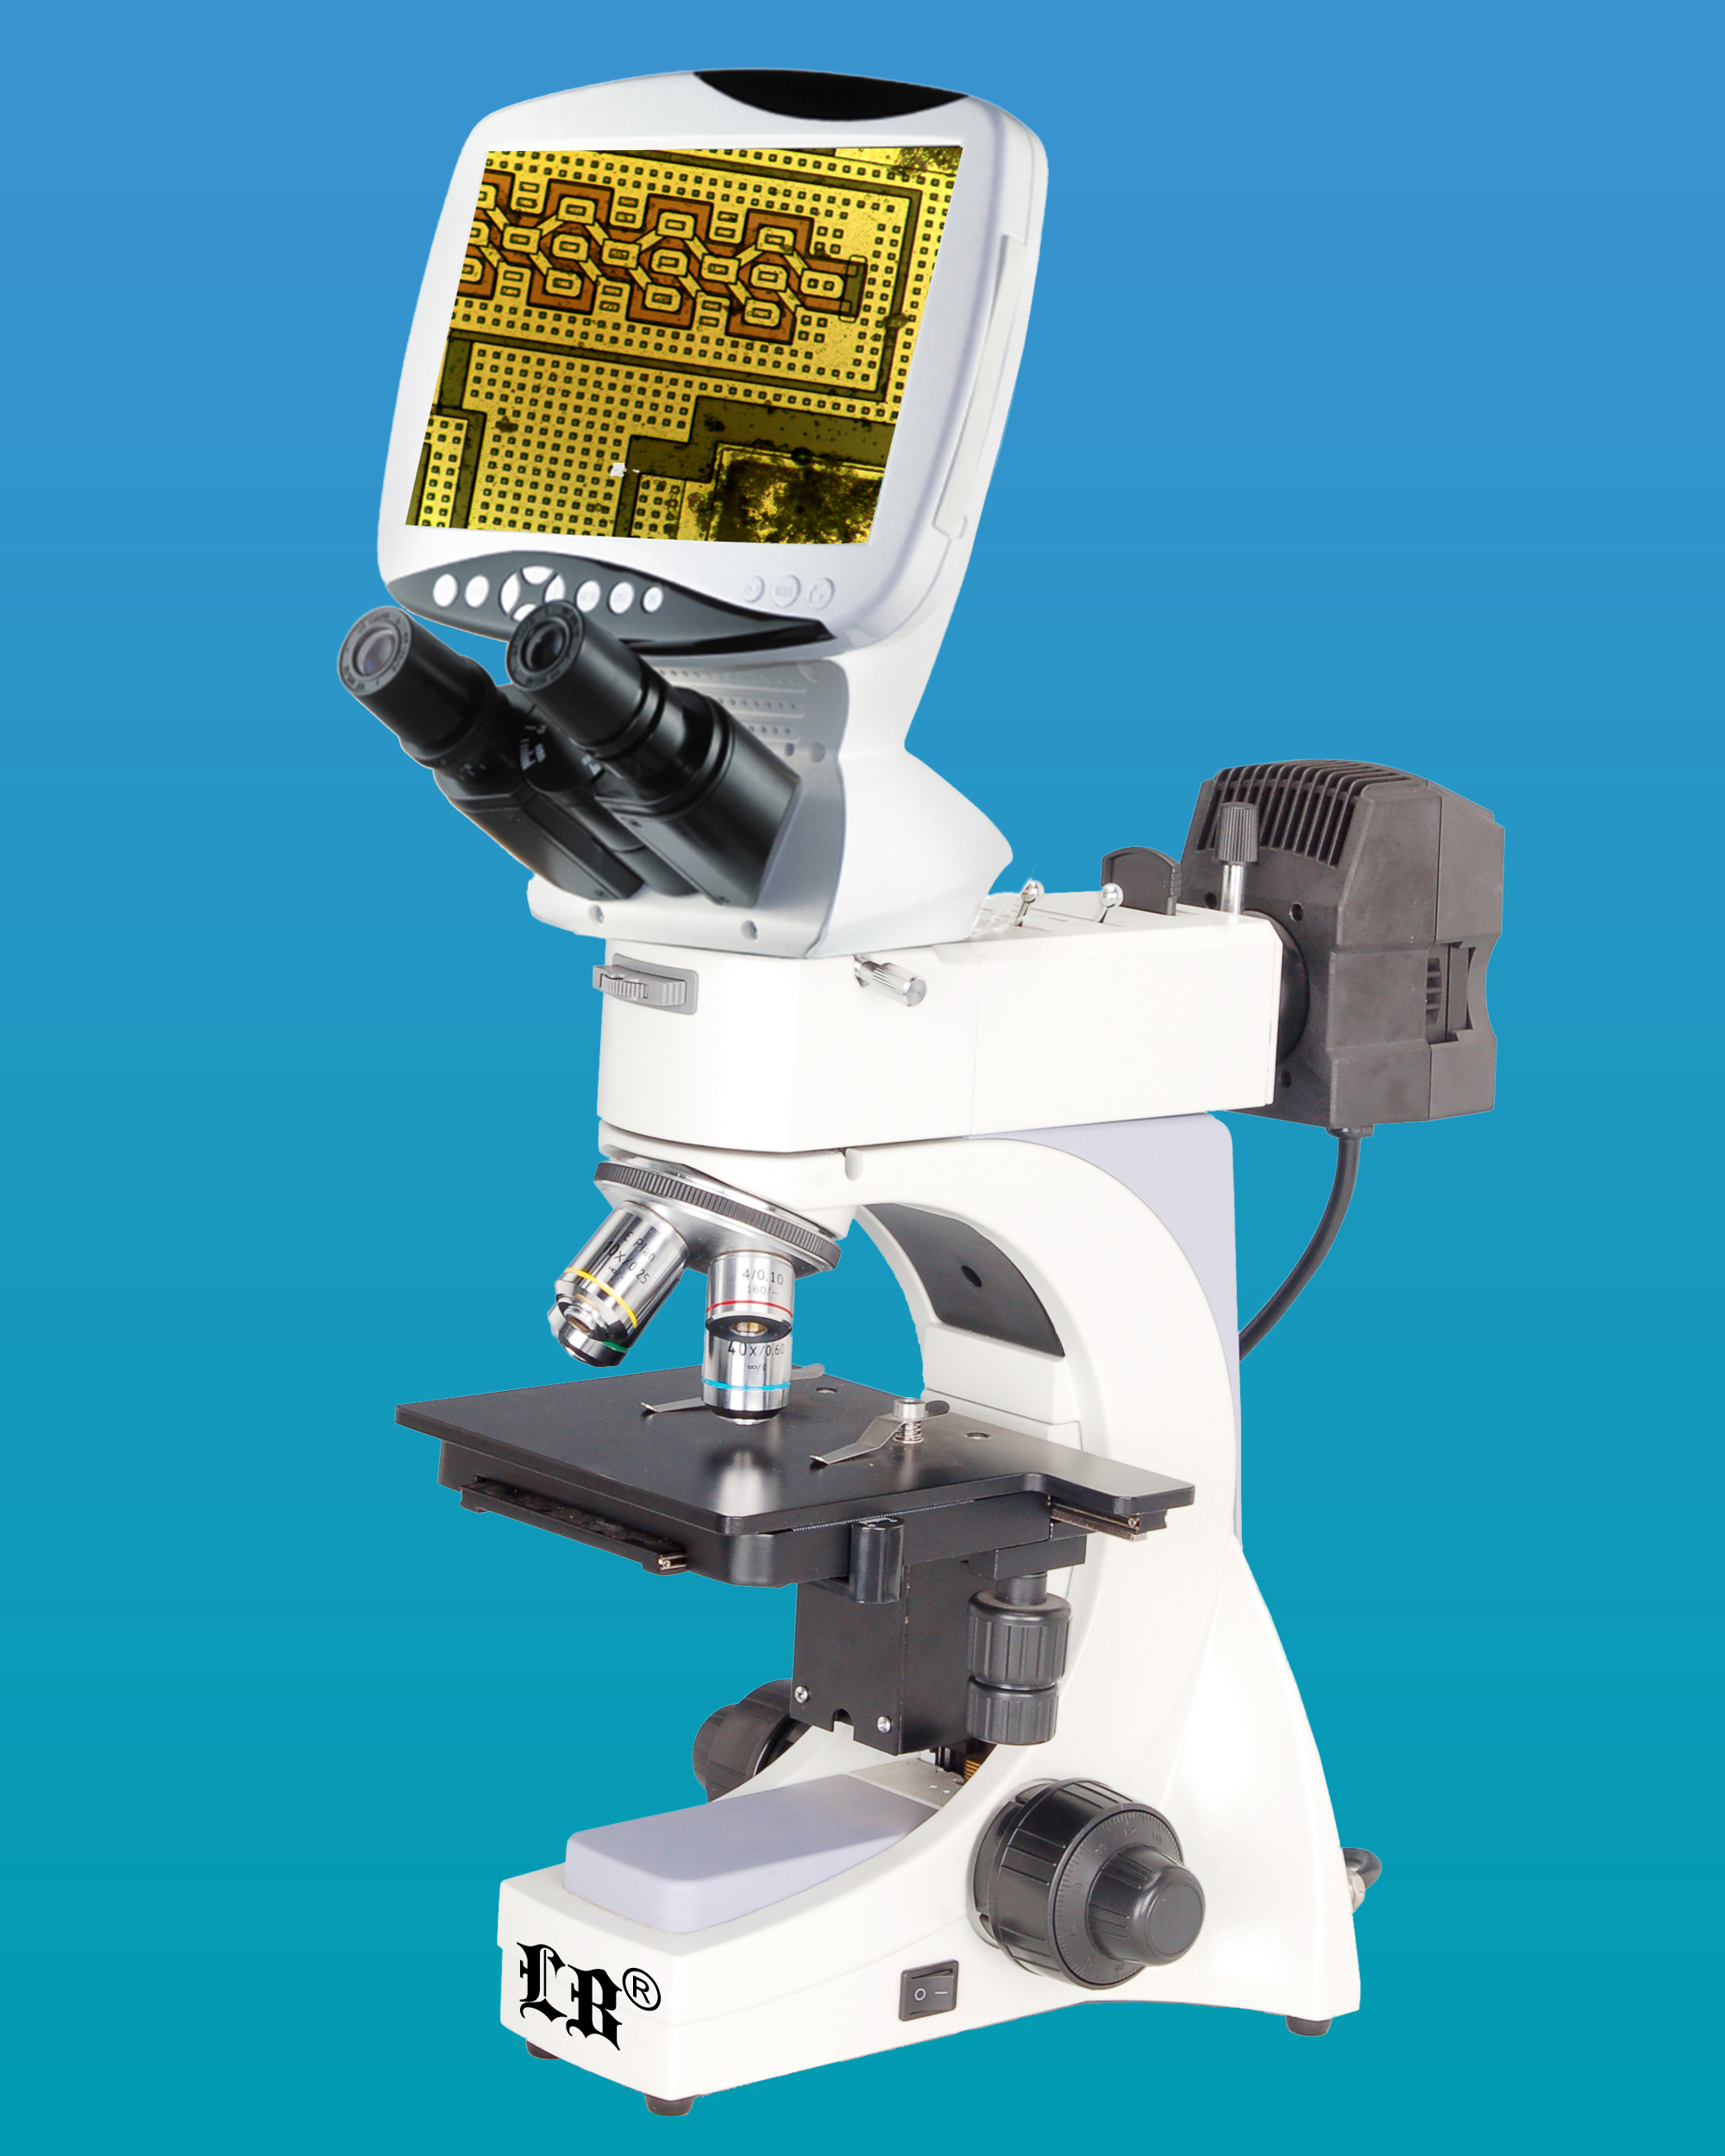 [LB-1600] Compound Digital LCD Metallurgical Microscope w/ 5.0MP Camera